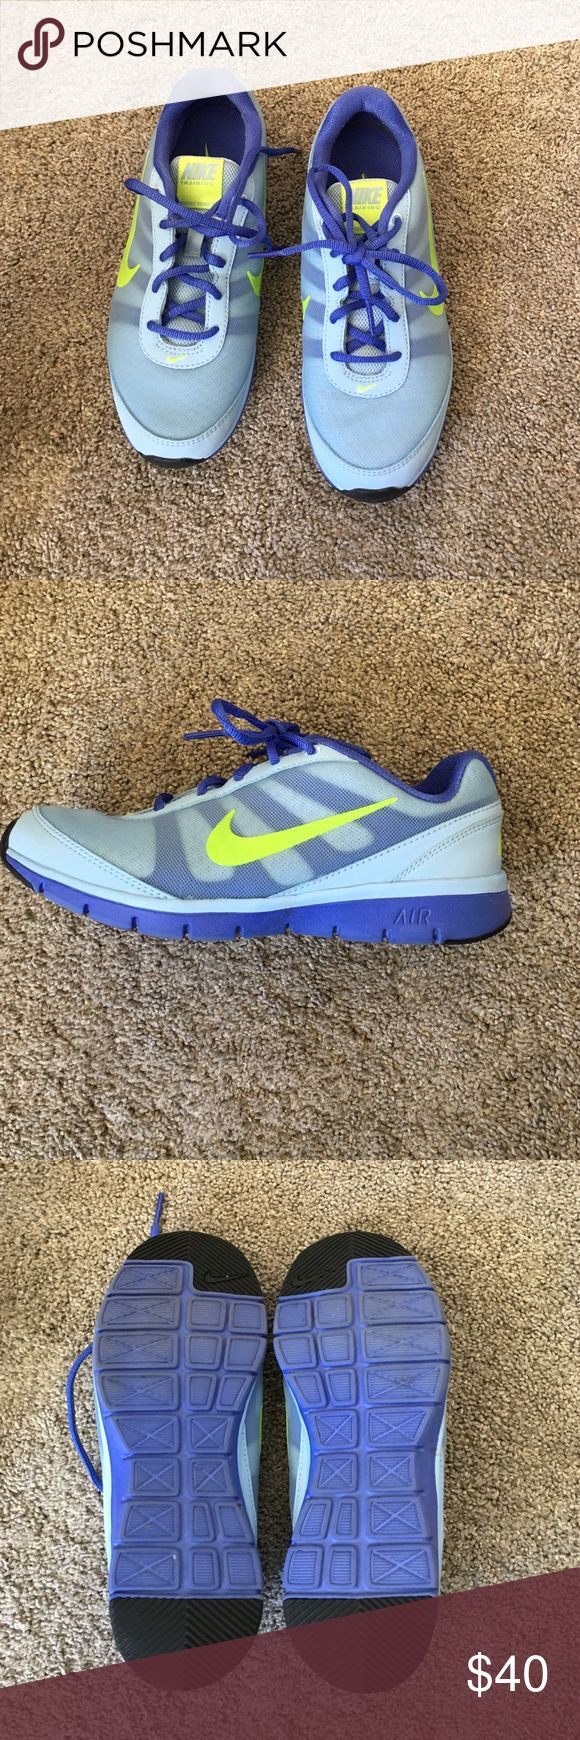 Ladies Nike trainer Super comfy, lightweight, in excellent condition. Worn once. Nike Shoes Athletic Shoes